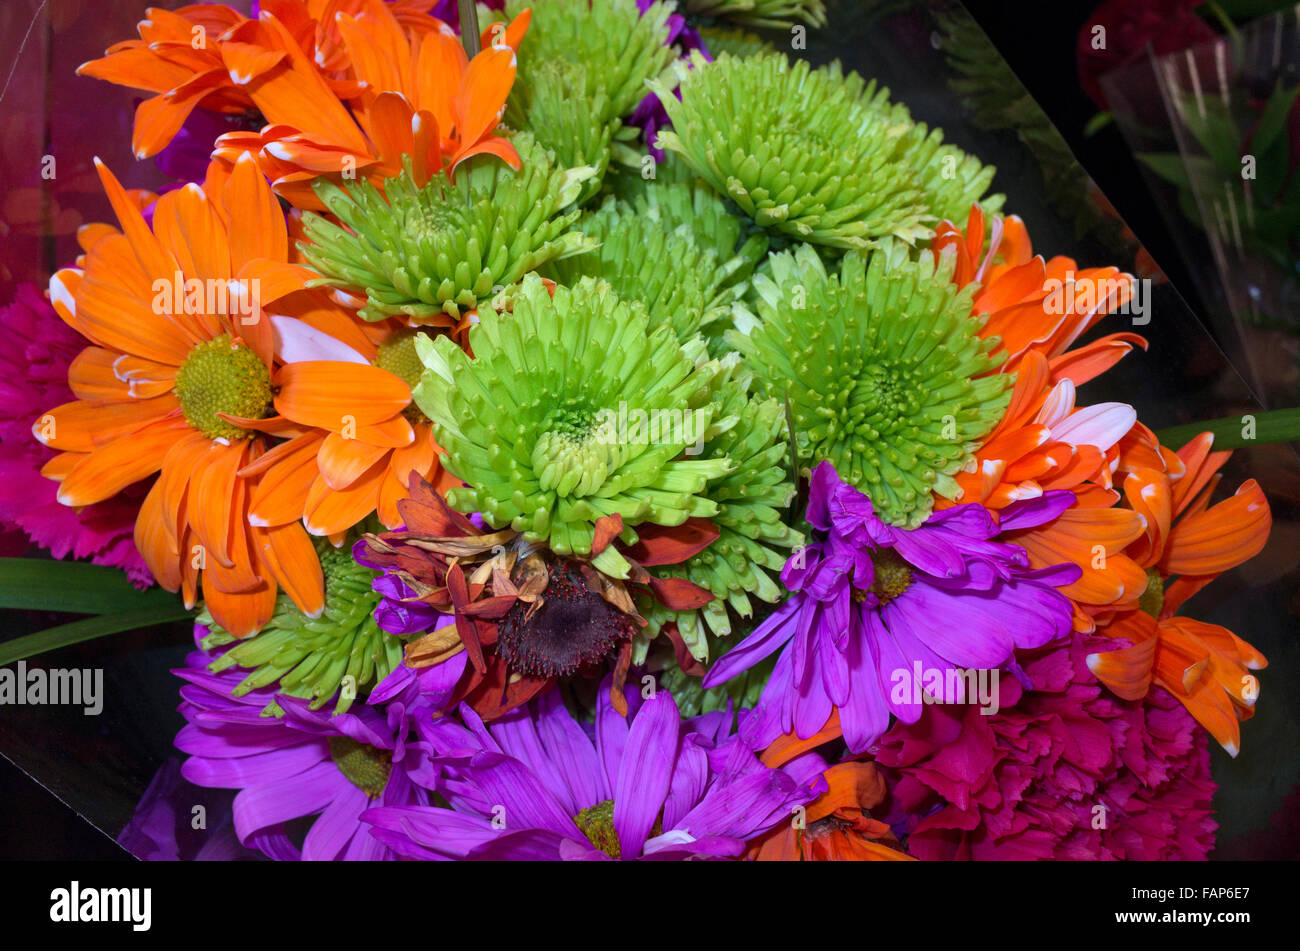 Bouquet of strikingly contrasting colors of orange green and purple flowers. St Paul Minnesota MN USA - Stock Image